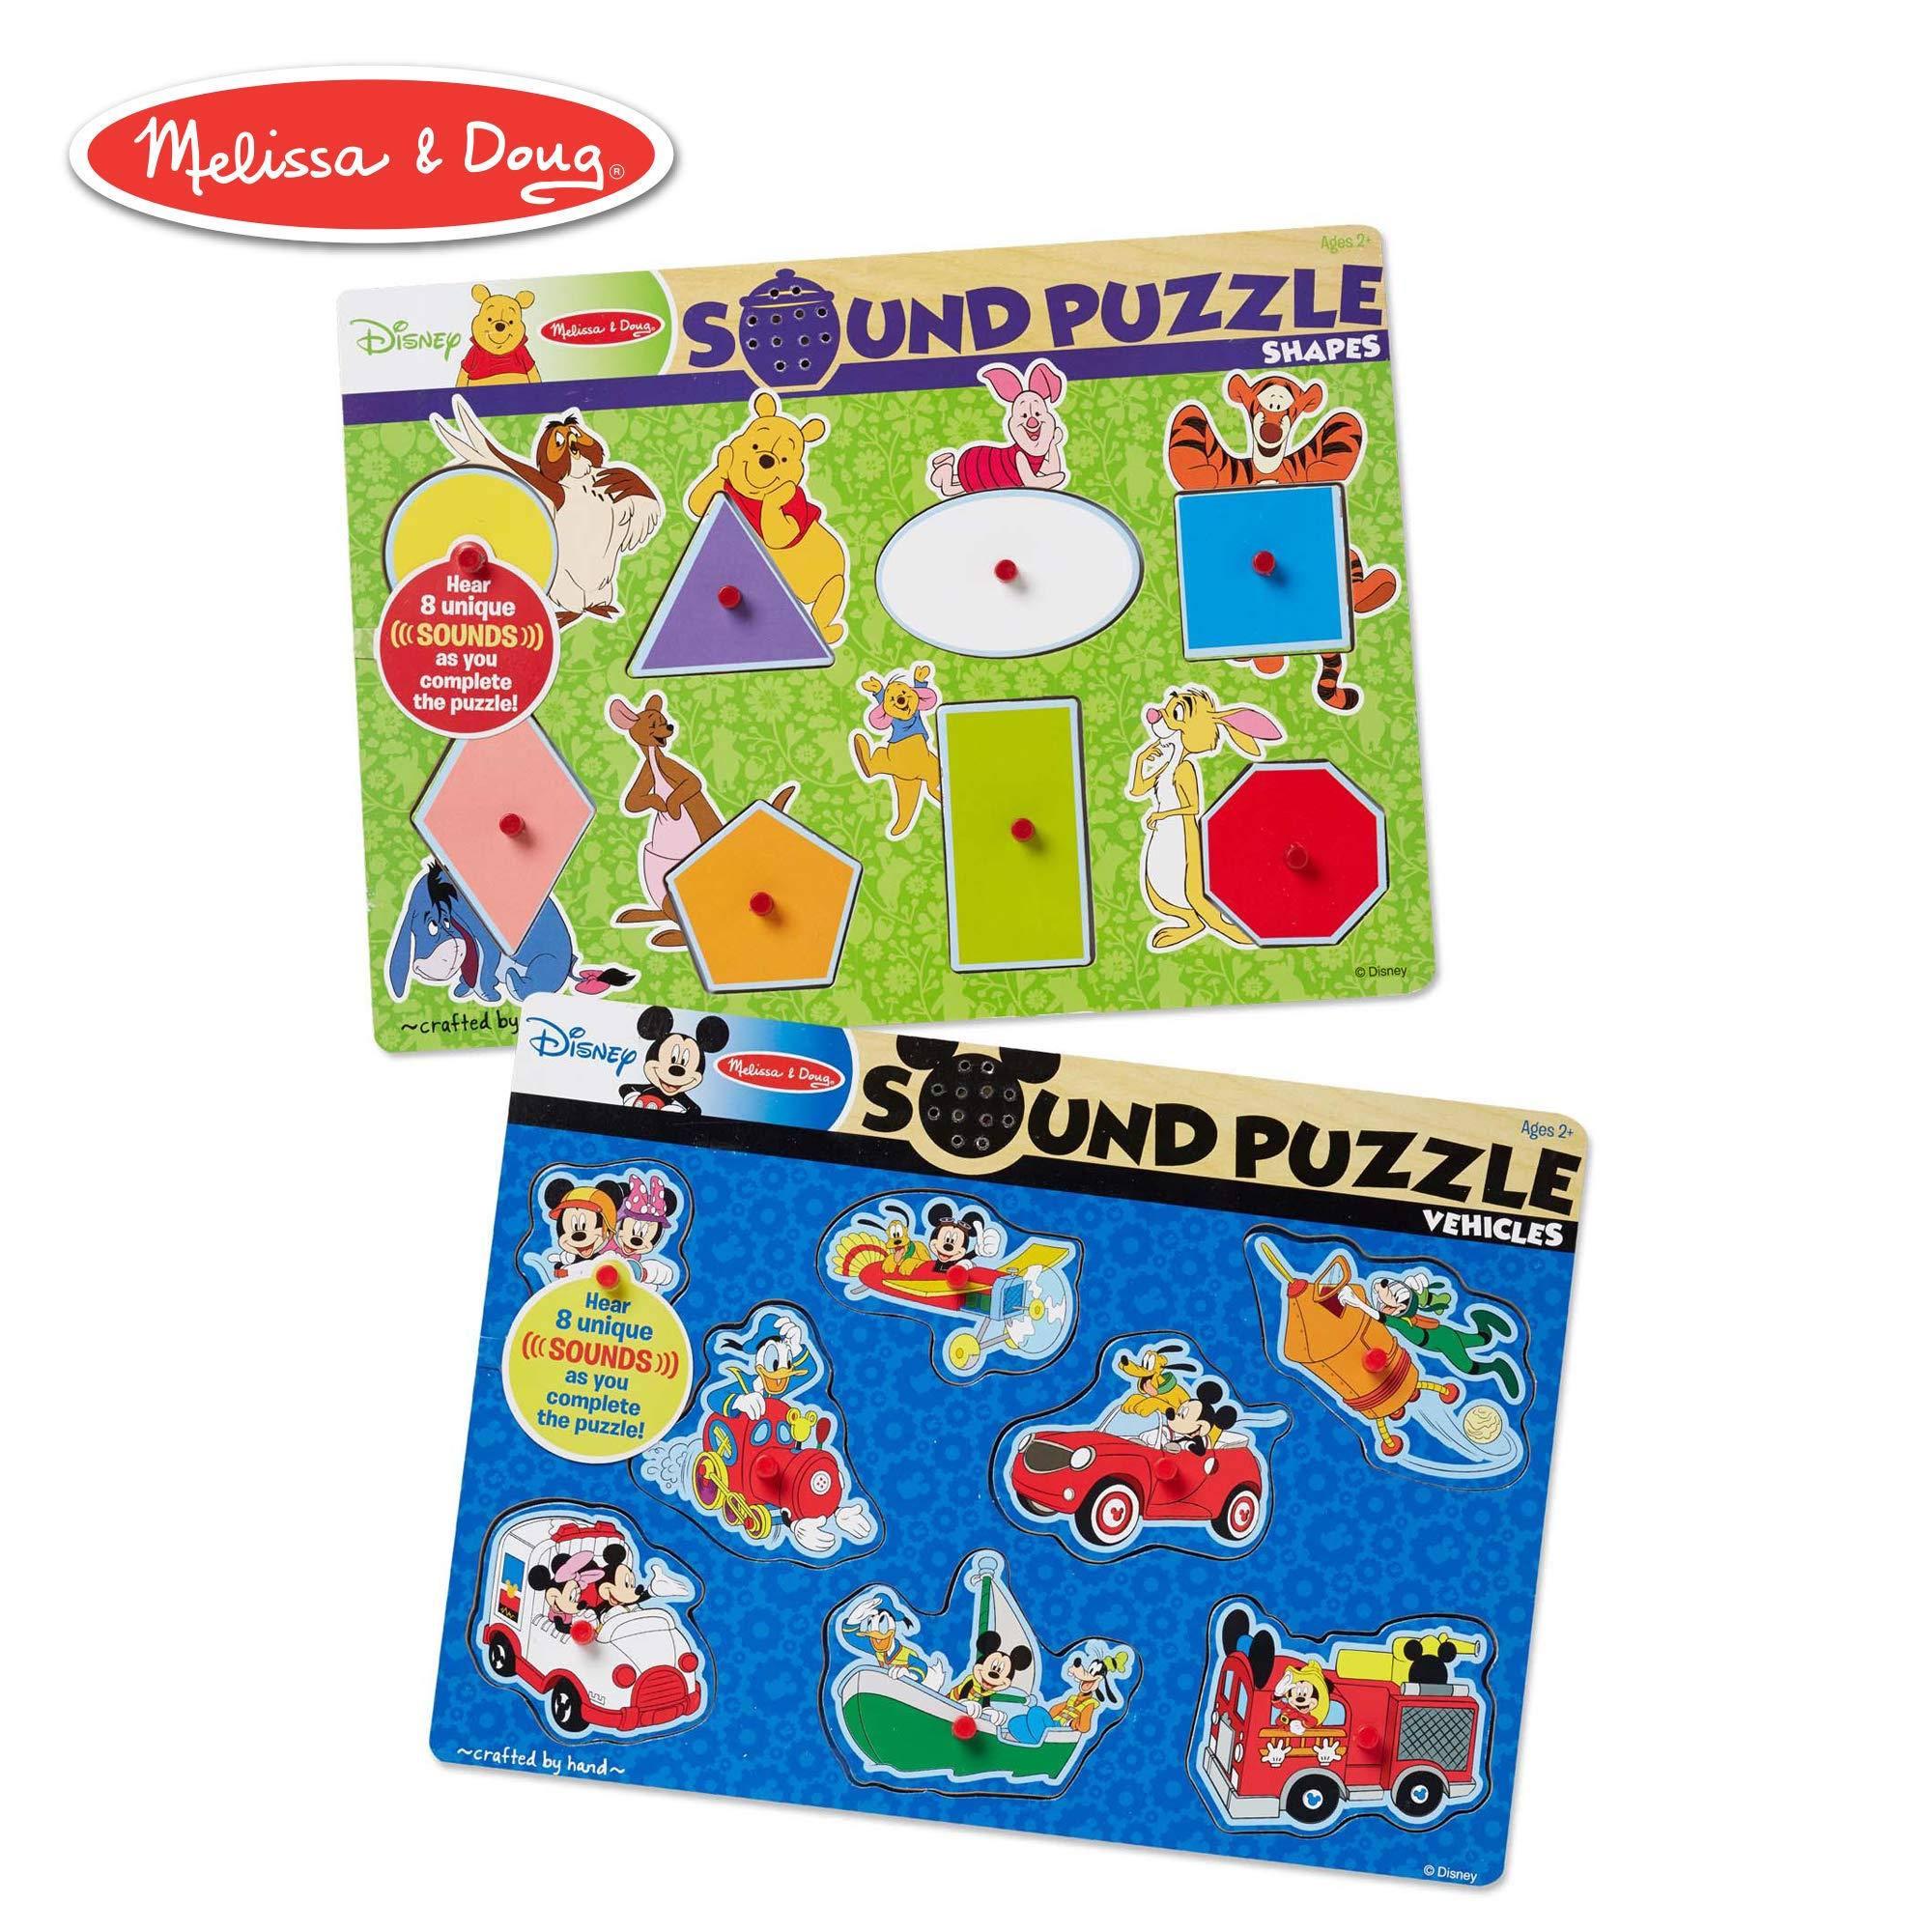 Melissa & Doug Disney Sound Puzzles Set: Winnie the Pooh Shapes and Mickey Mouse Vehicles by Melissa & Doug